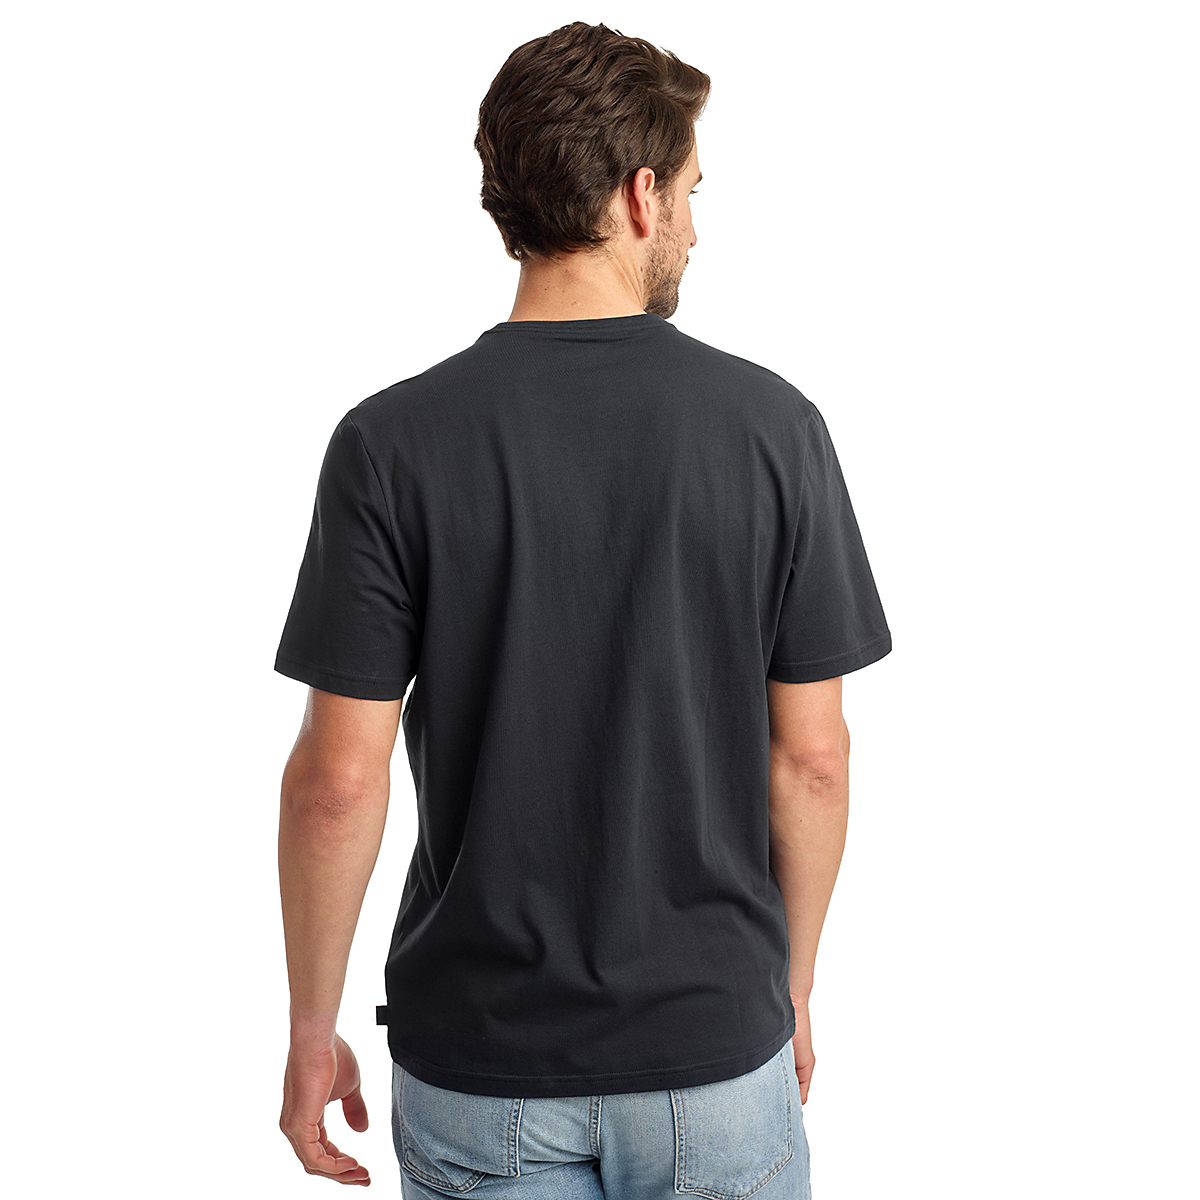 Men's Saucony Rested Short Sleeve Tee, , large, image 2